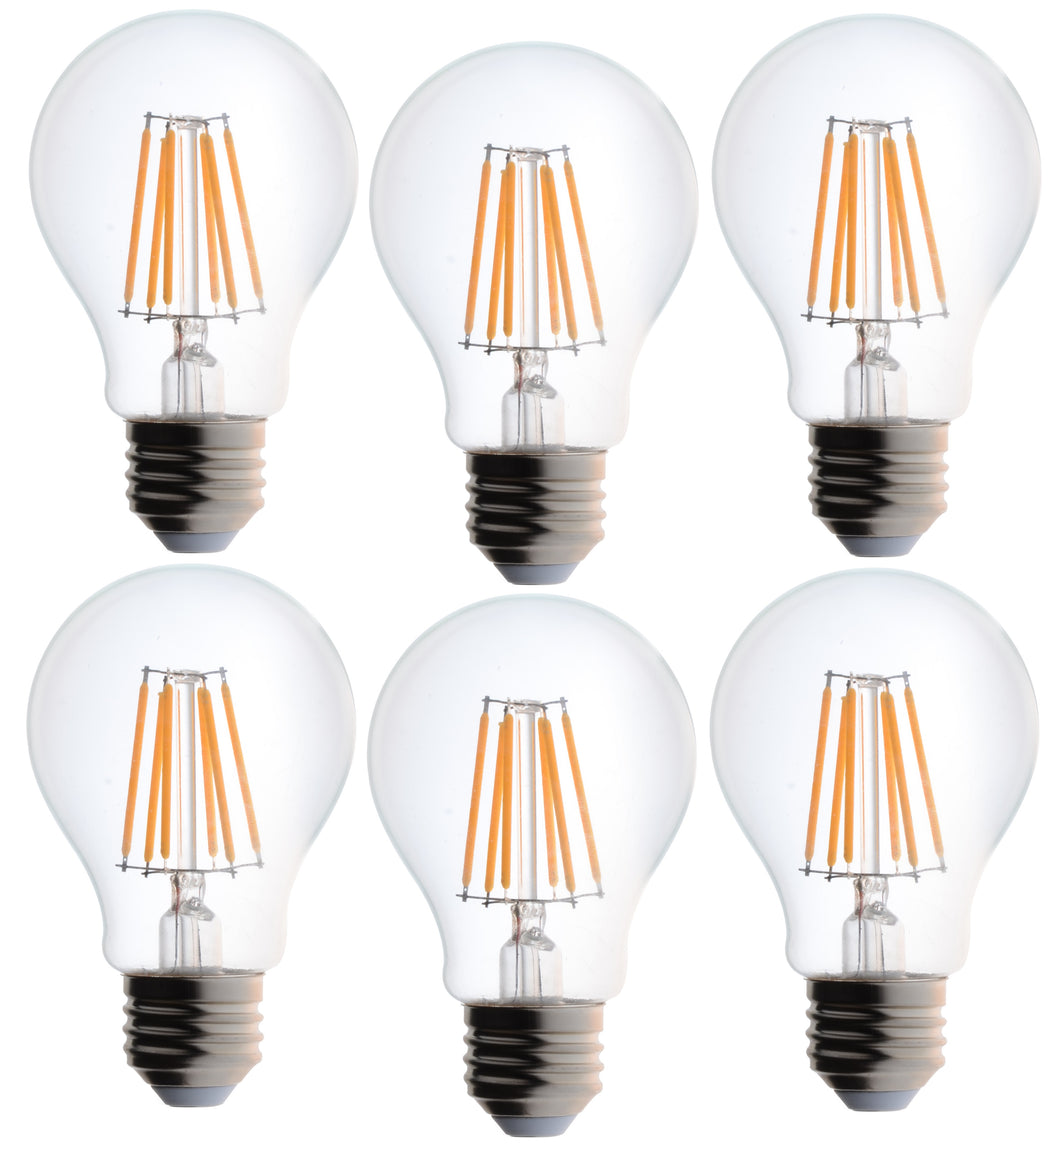 Bioluz LED Dimmable 60W Clear Edison Style Filament LED, A19 Light Bulb, Warm White 2700K, UL Listed